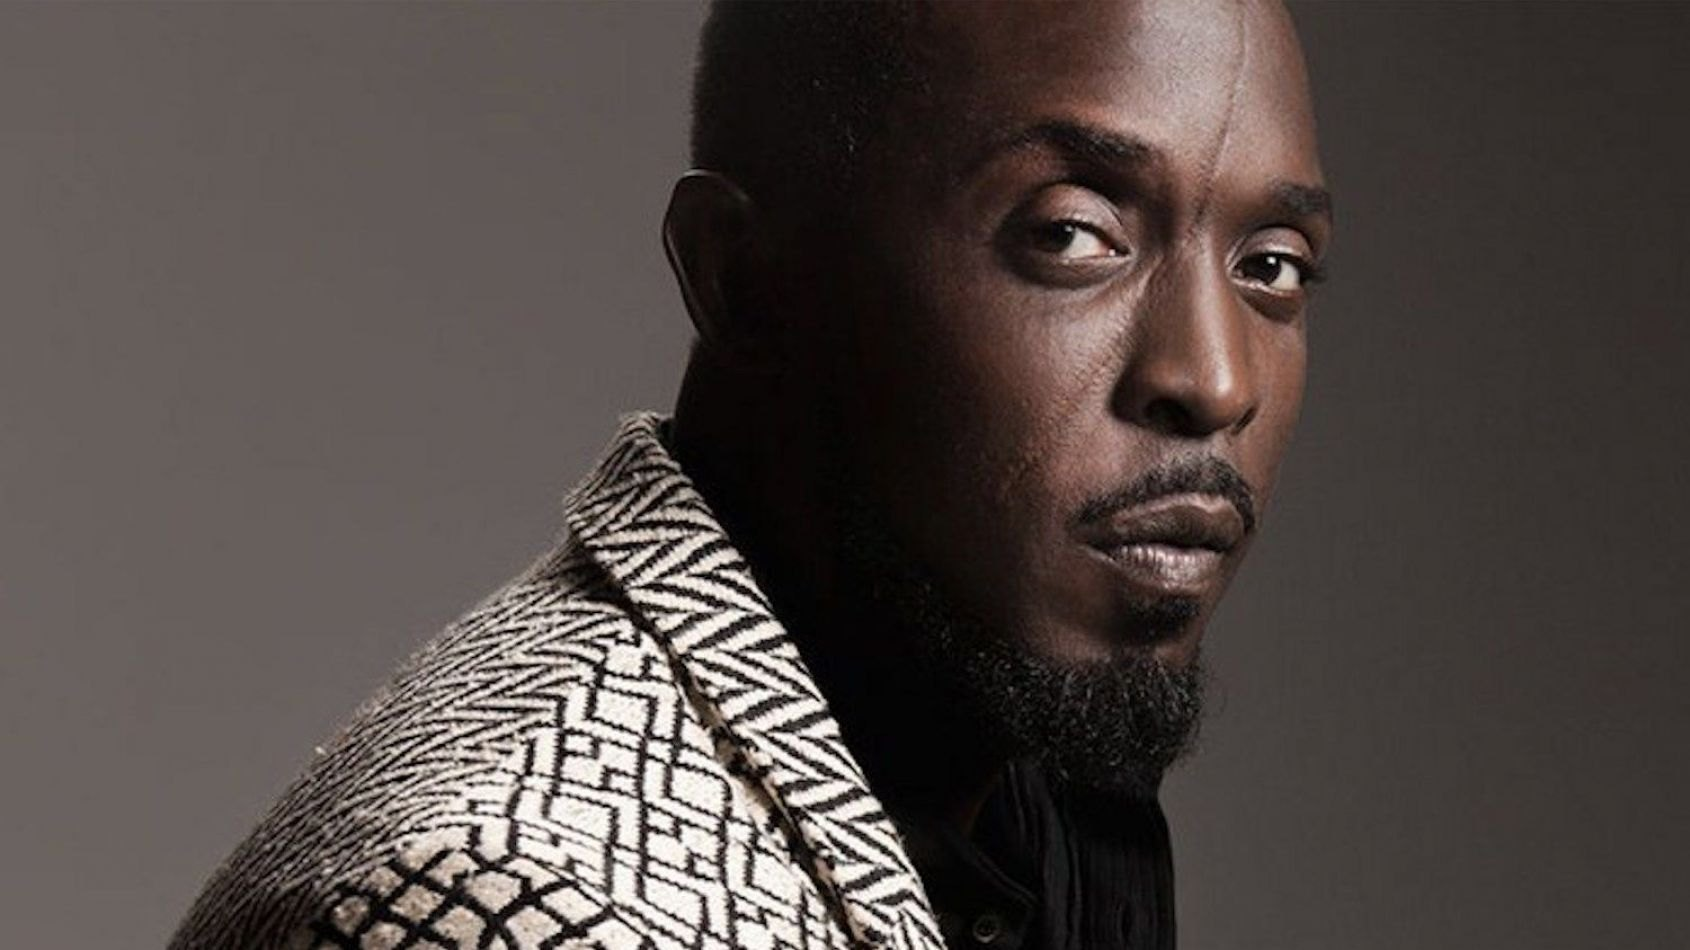 Michael K. Williams sera-t-il le méchant dans le spin off Han Solo ?